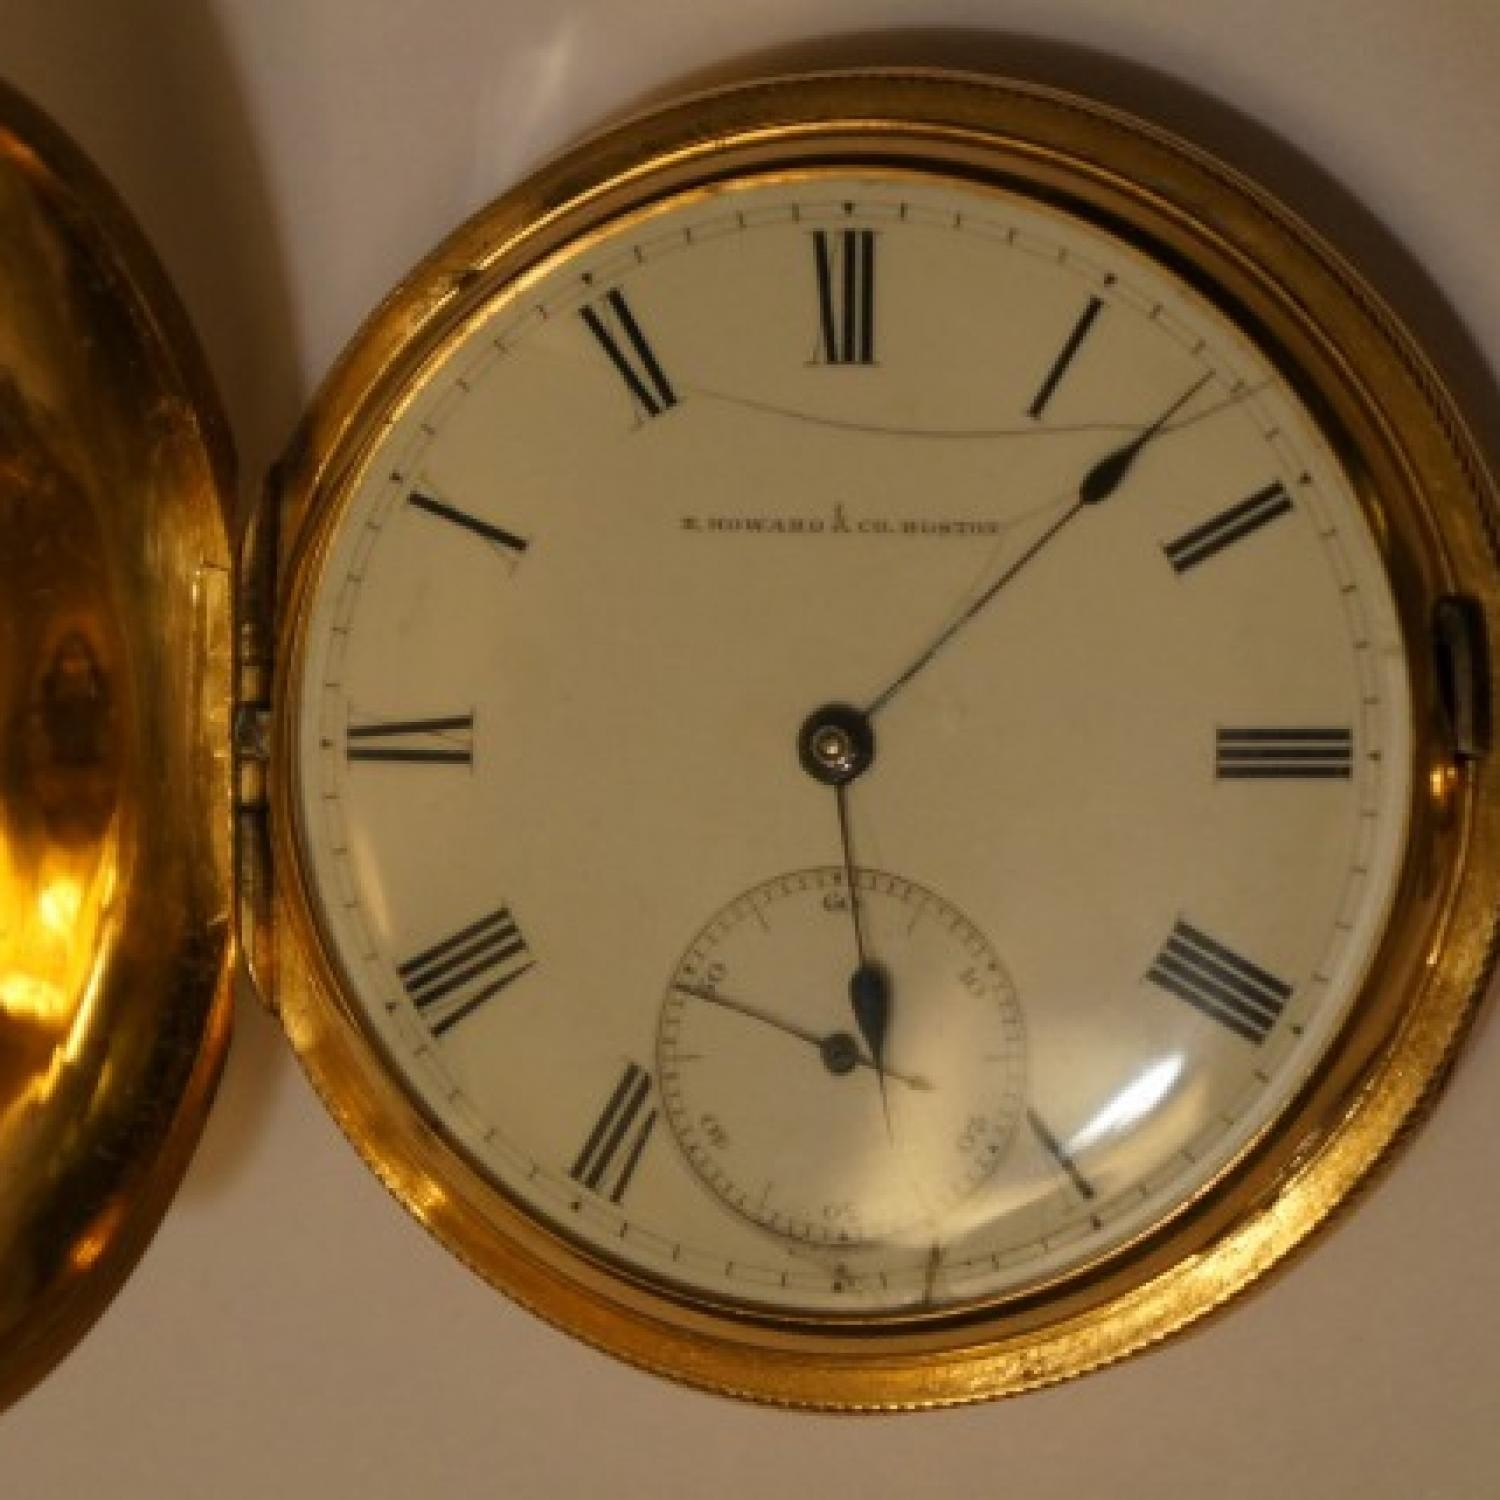 Image of E. Howard & Co. Series III #13395 Dial